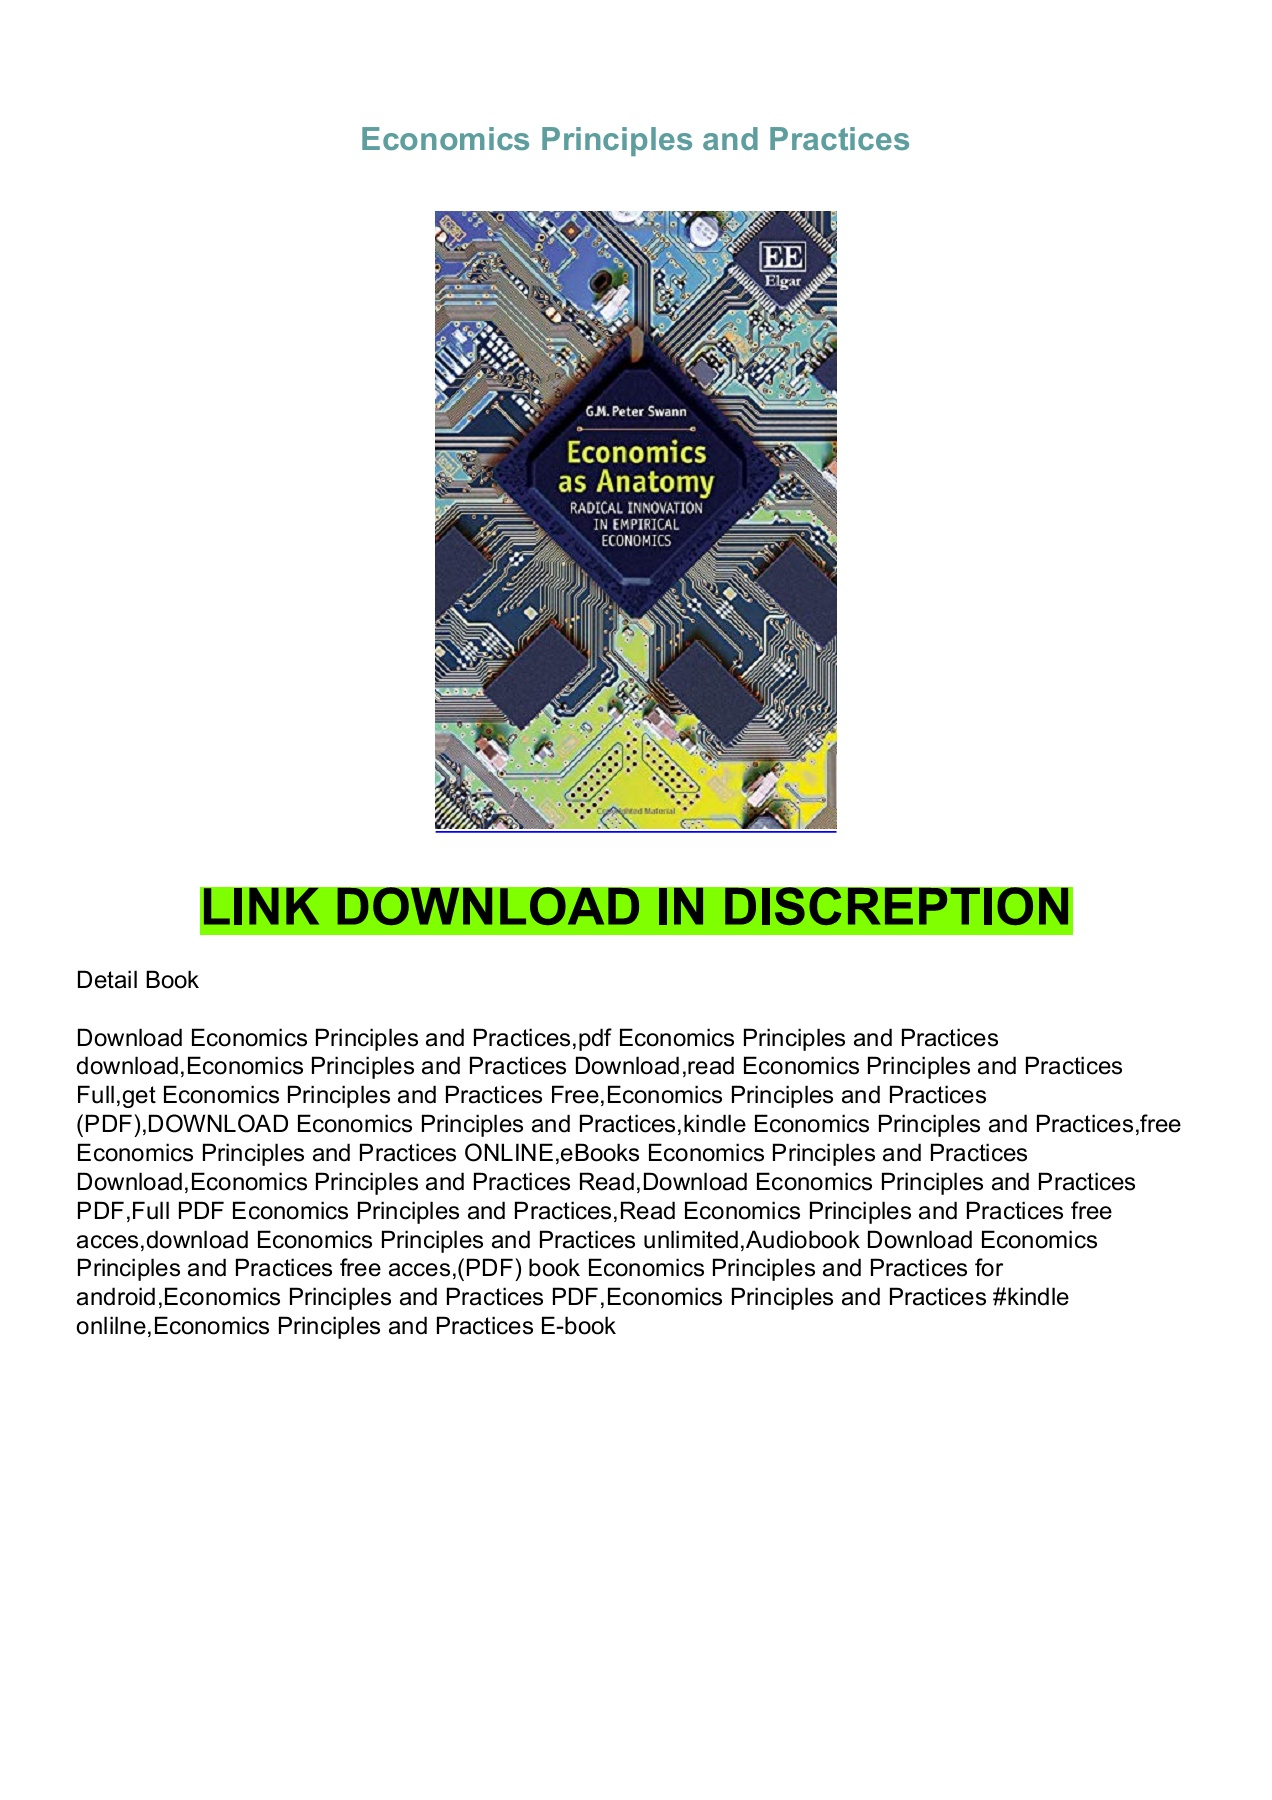 Economics Principles And Practices Pdf